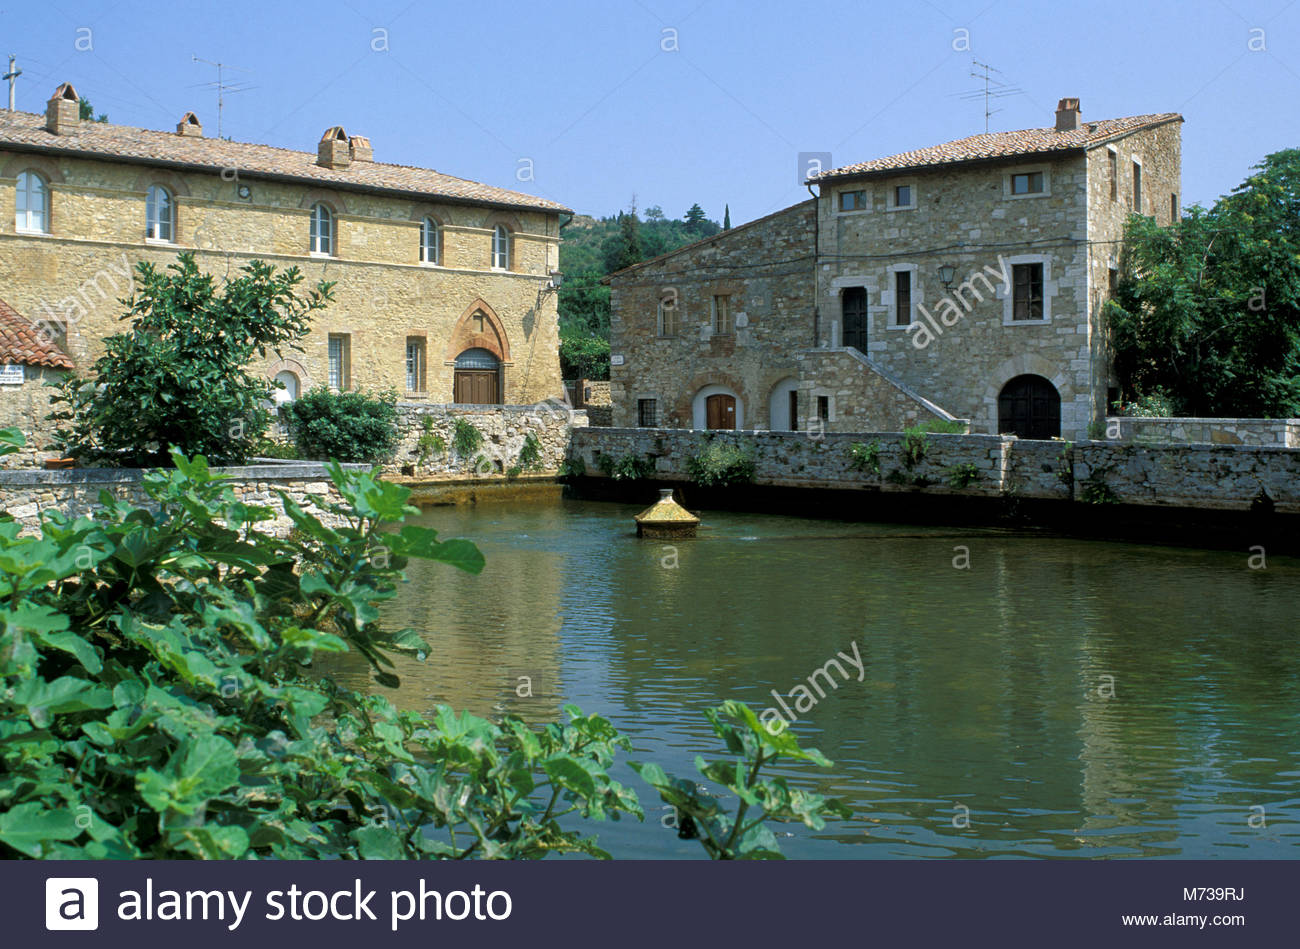 Bagno Vignoni Italy Stock Photos  Bagno Vignoni Italy Stock Images  Alamy